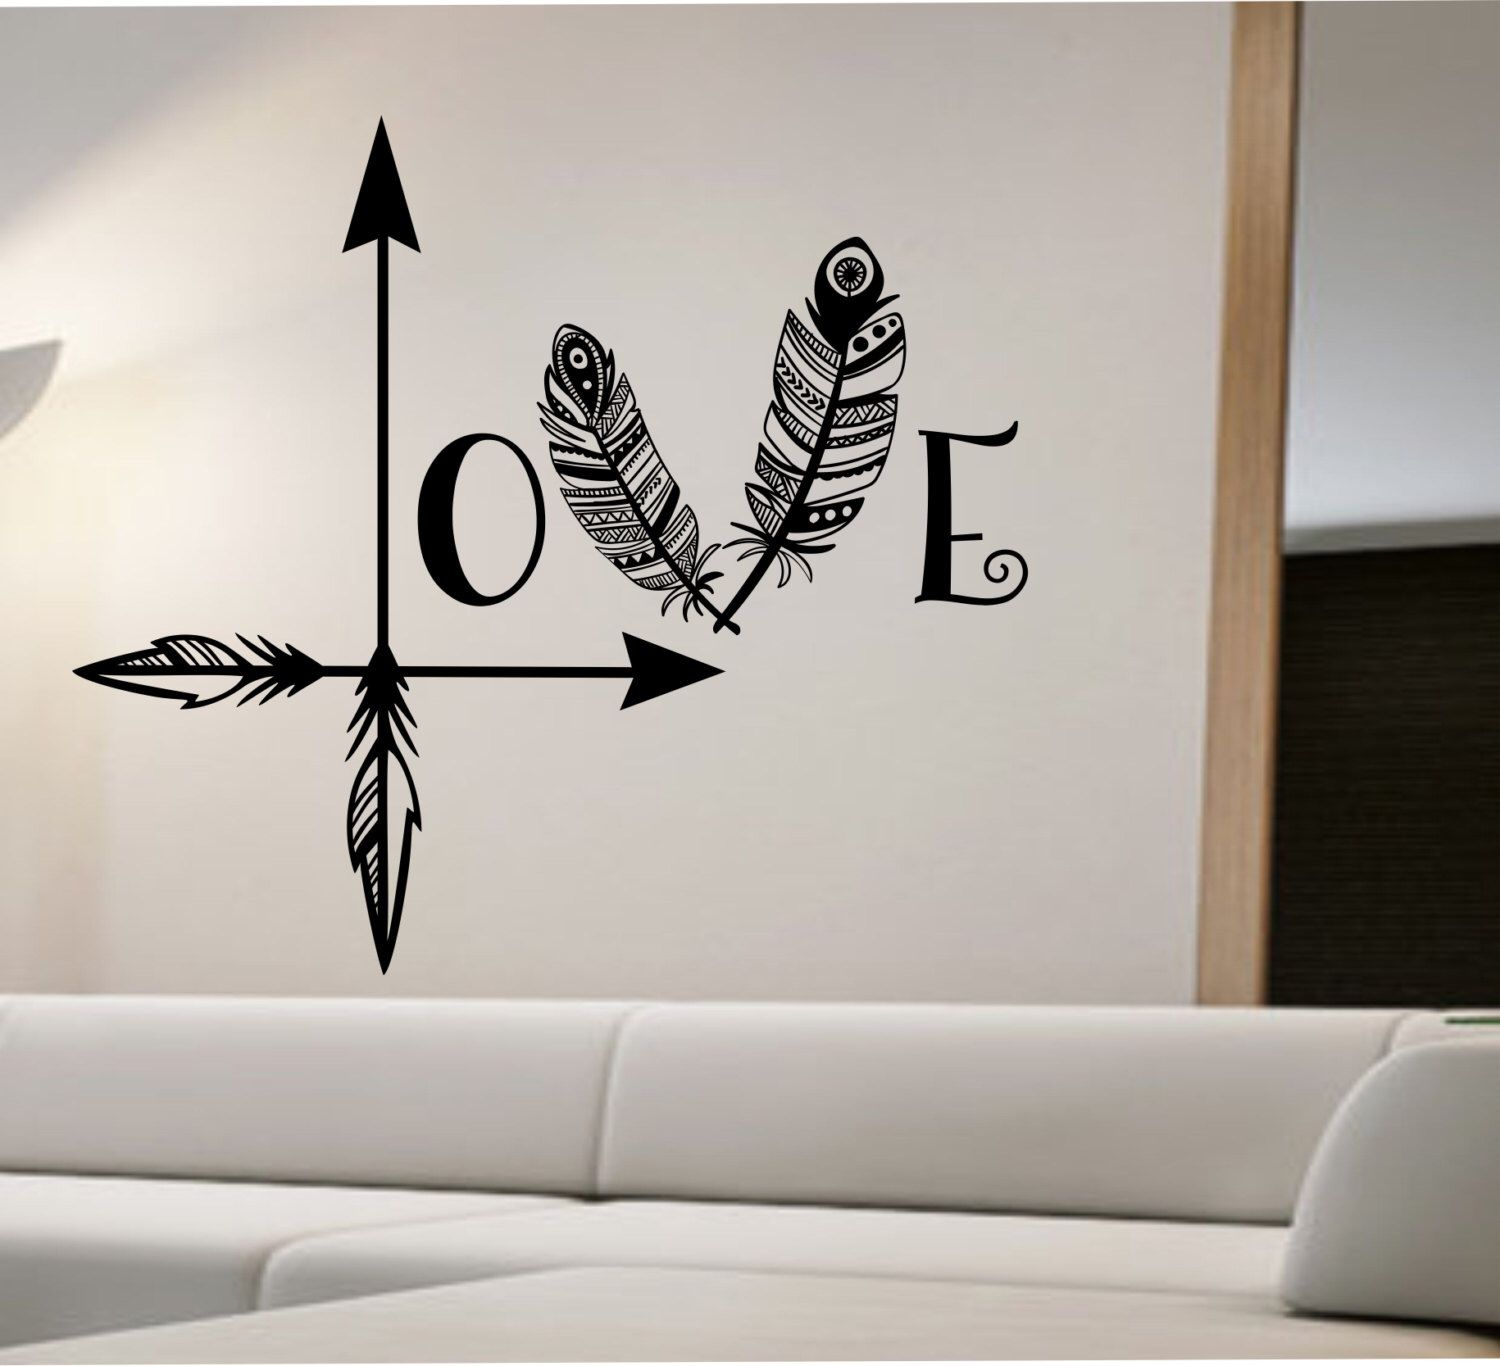 Arrow feather love wall decal namaste vinyl sticker art decor arrow feather love wall decal namaste vinyl sticker art decor bedroom design mural home decor room amipublicfo Choice Image